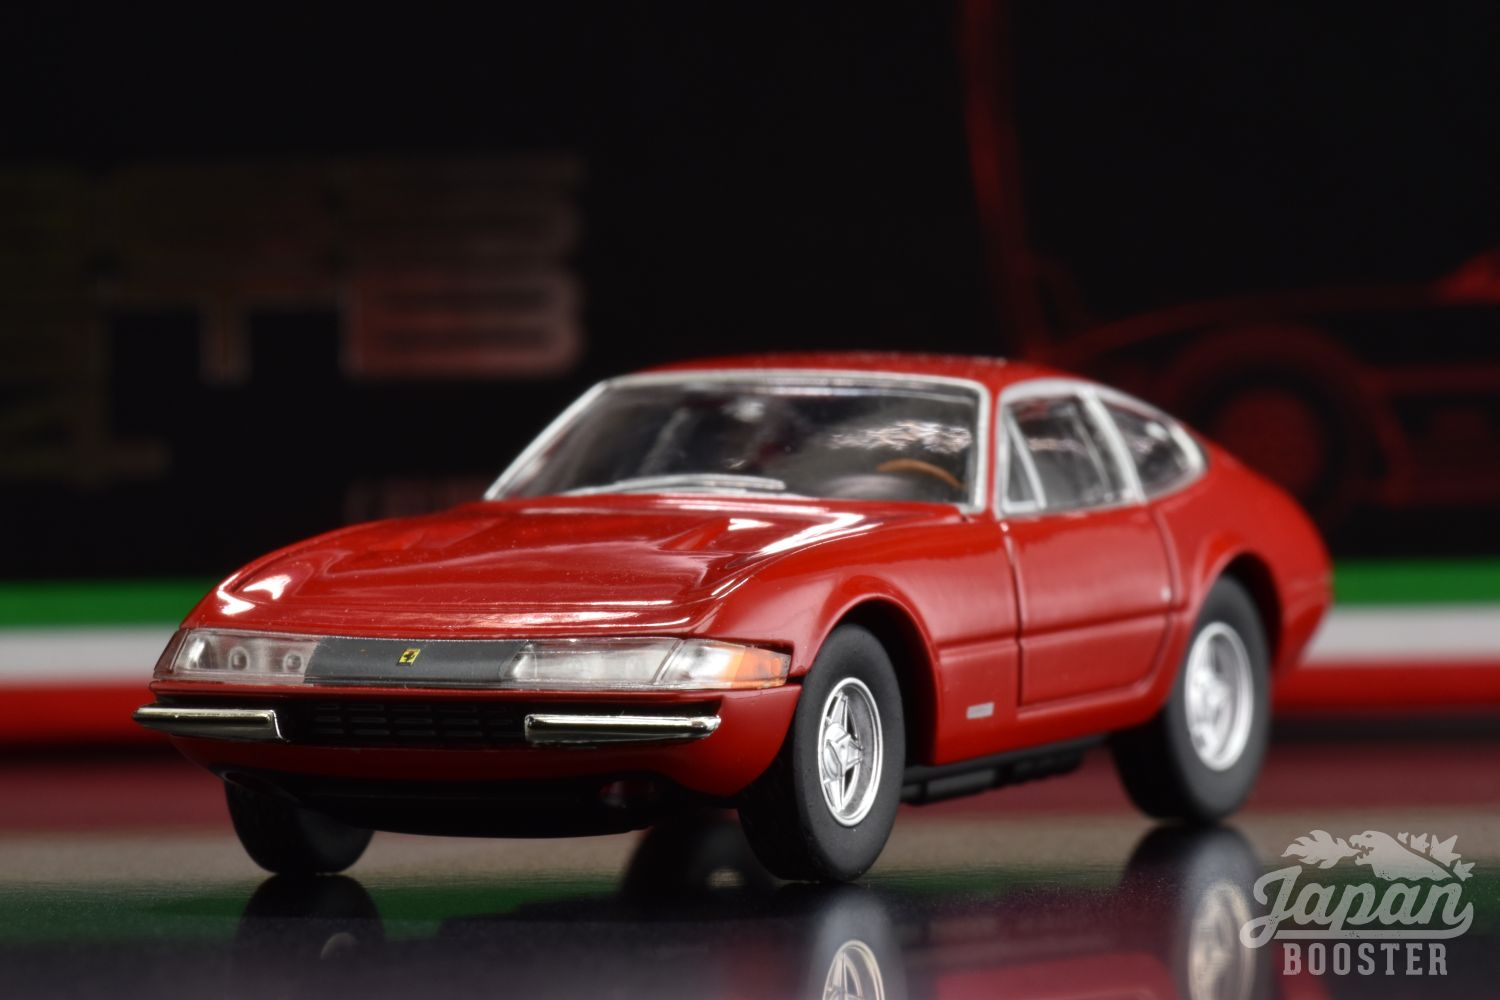 LV-FERRARI 365 GTB4 Red